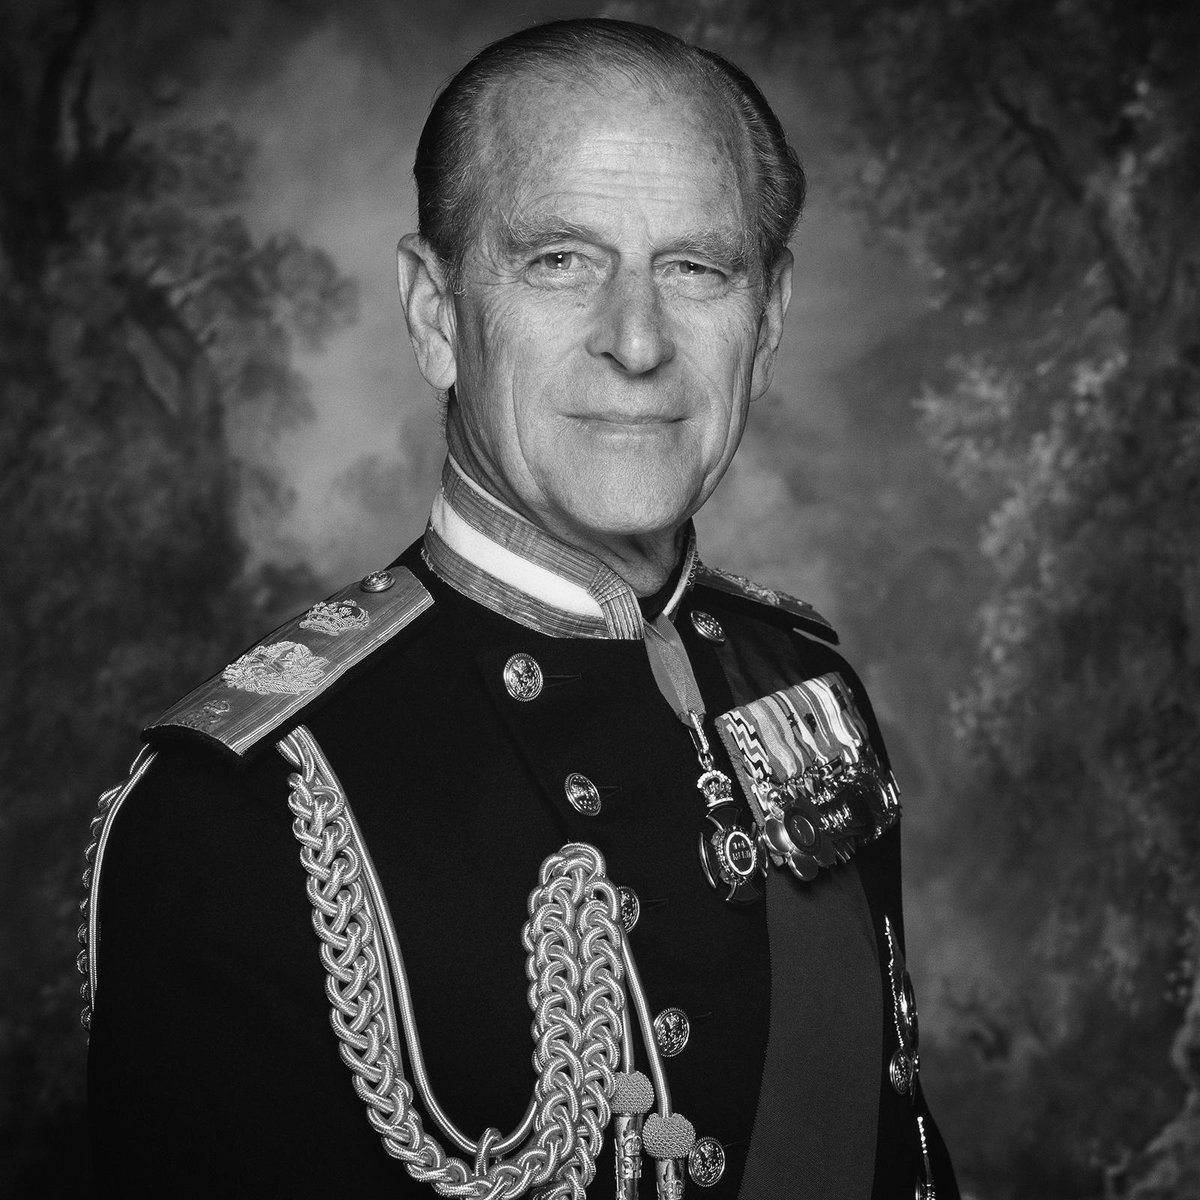 Very sad to hear this news. An amazing life of service to this country #PrincePhilip